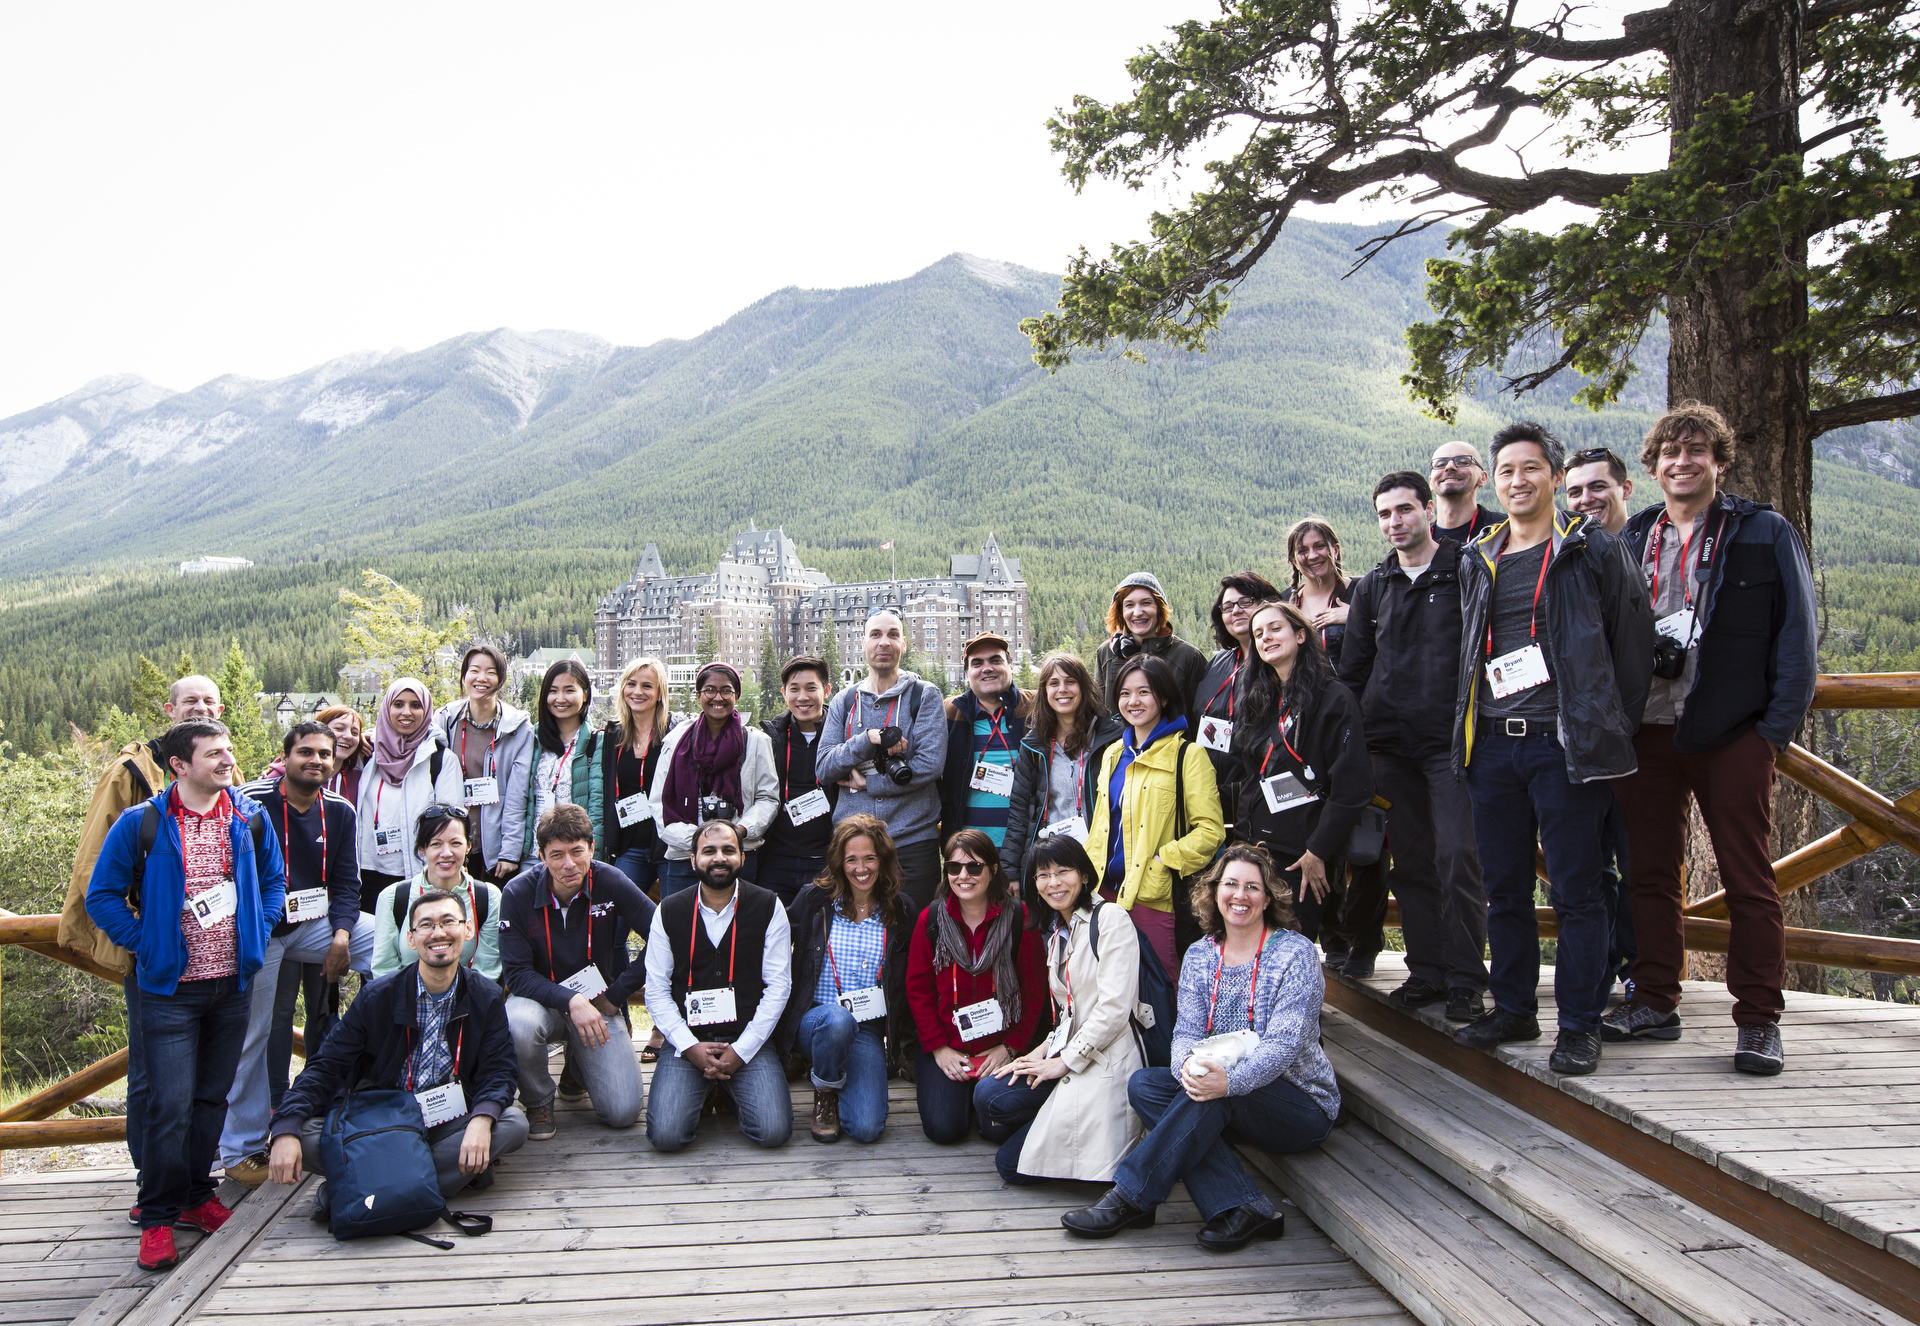 50 TED Translators gather at TEDSummit 2016, June 25, 2016, Banff, Canada. Photo: Marla Aufmuth / TED